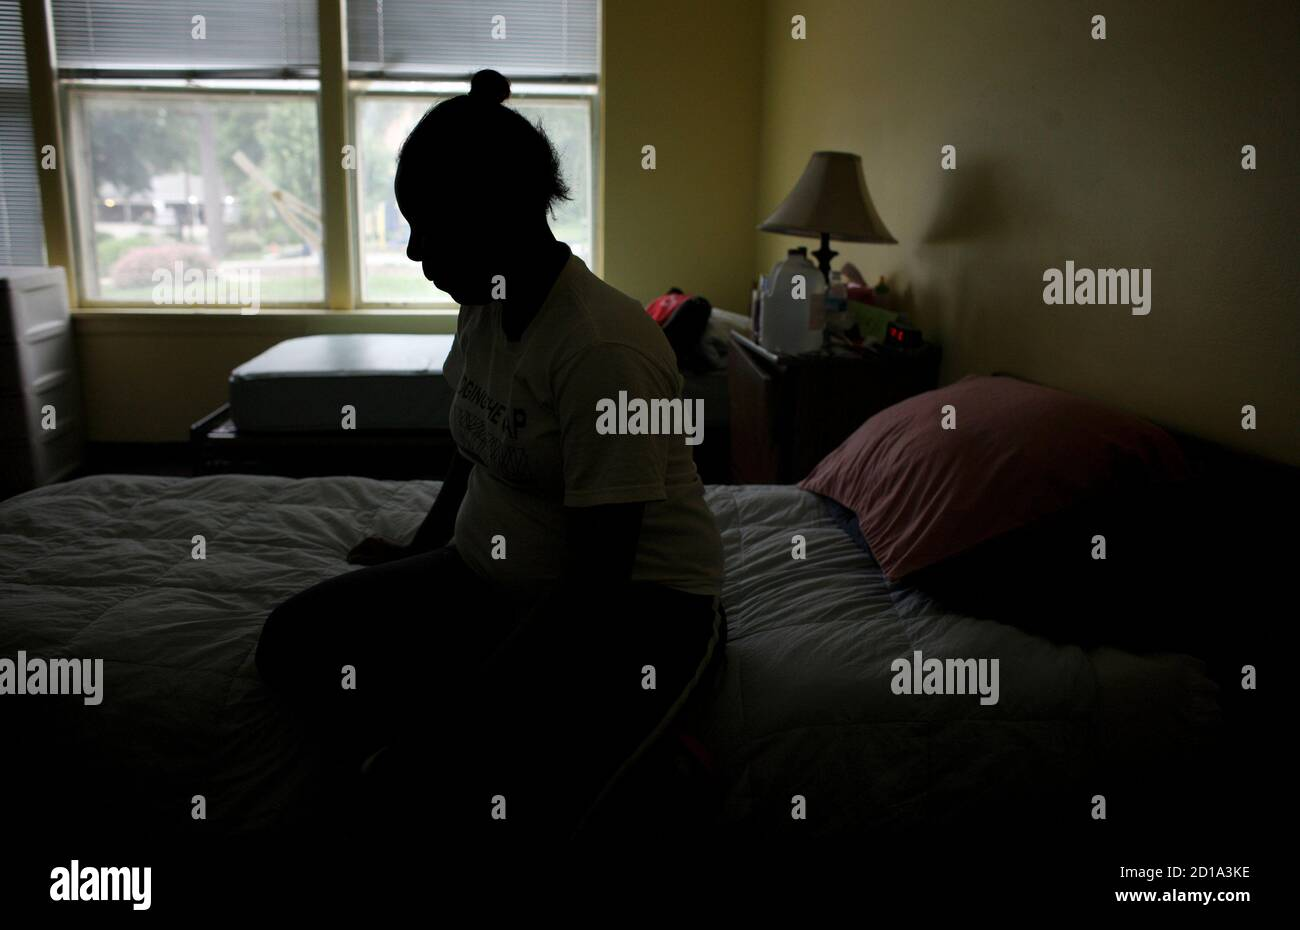 EDITOR'S NOTE: SUBJECT IS SILHOUETTED TO PROTECT HER IDENTITY FOR HER SAFETY, THIS IMAGE SHOULD NOT BE LIGHTENED TO SHOW SUBJECT'S FACE A pregnant victim of domestic violence rests in her room at Mutual Ground's shelter in Aurora, Illinois, June 18, 2009. Housed in a 19th century mansion, Mutual Ground Inc shelter for battered women and children which last year housed 400 people is now another victim of the crisis in U.S. social services amid a deep recession and plans to close its doors on July 1. Picture taken June 18, 2009. REUTERS/John Gress (UNITED STATES CONFLICT  BUSINESS SOCIETY IMAGES Stock Photo